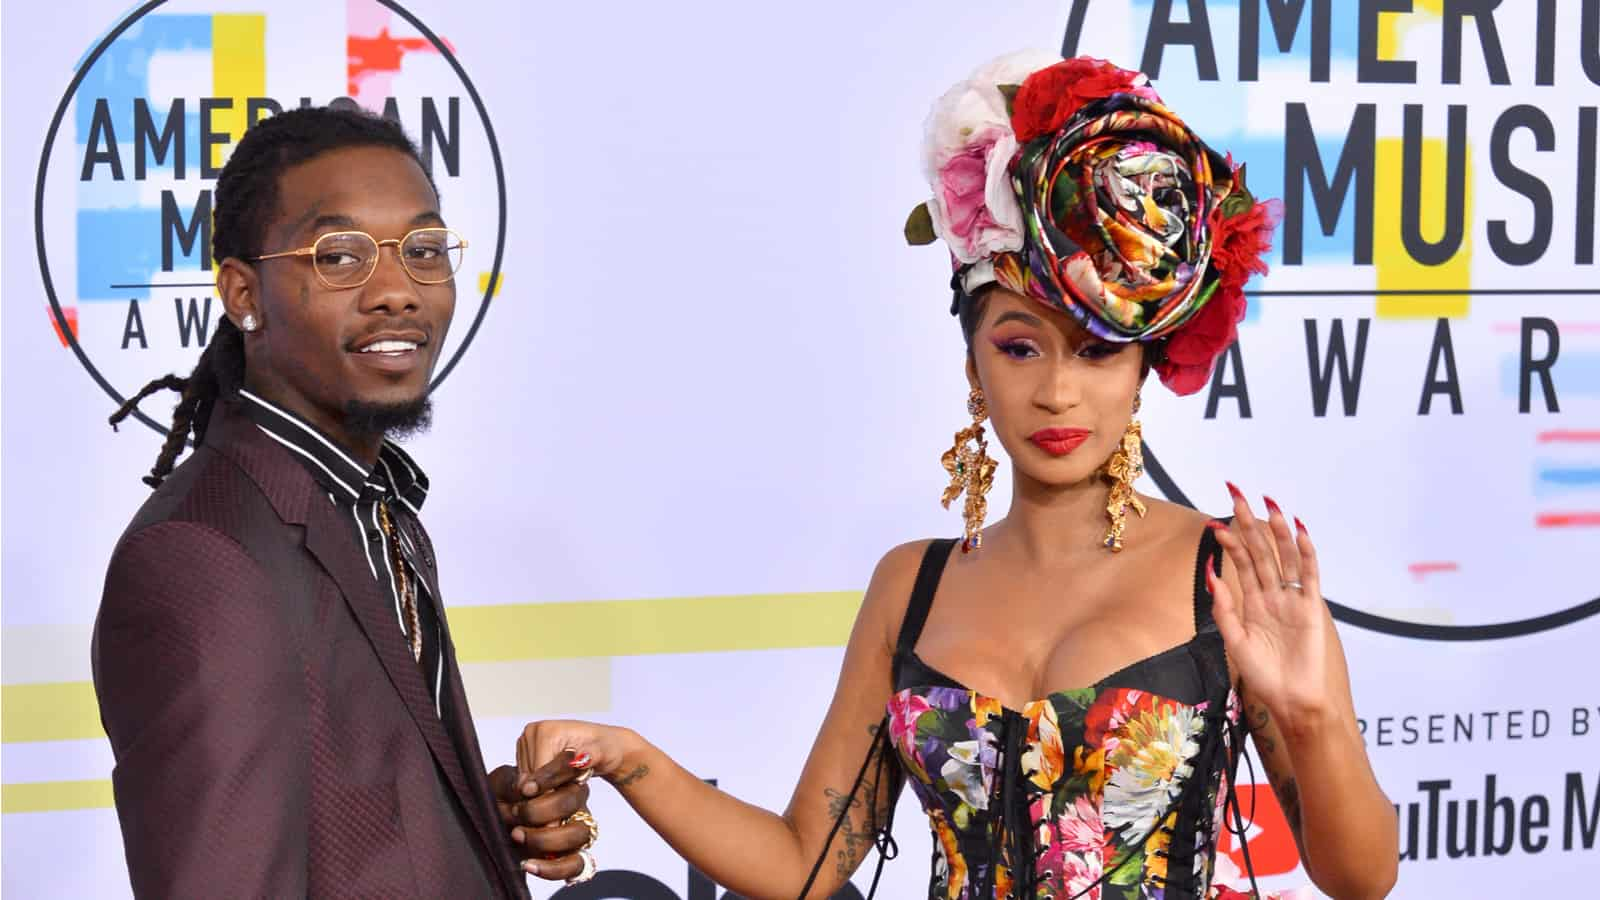 Report: Offset's Step-Father Blames Cardi B for Exposing